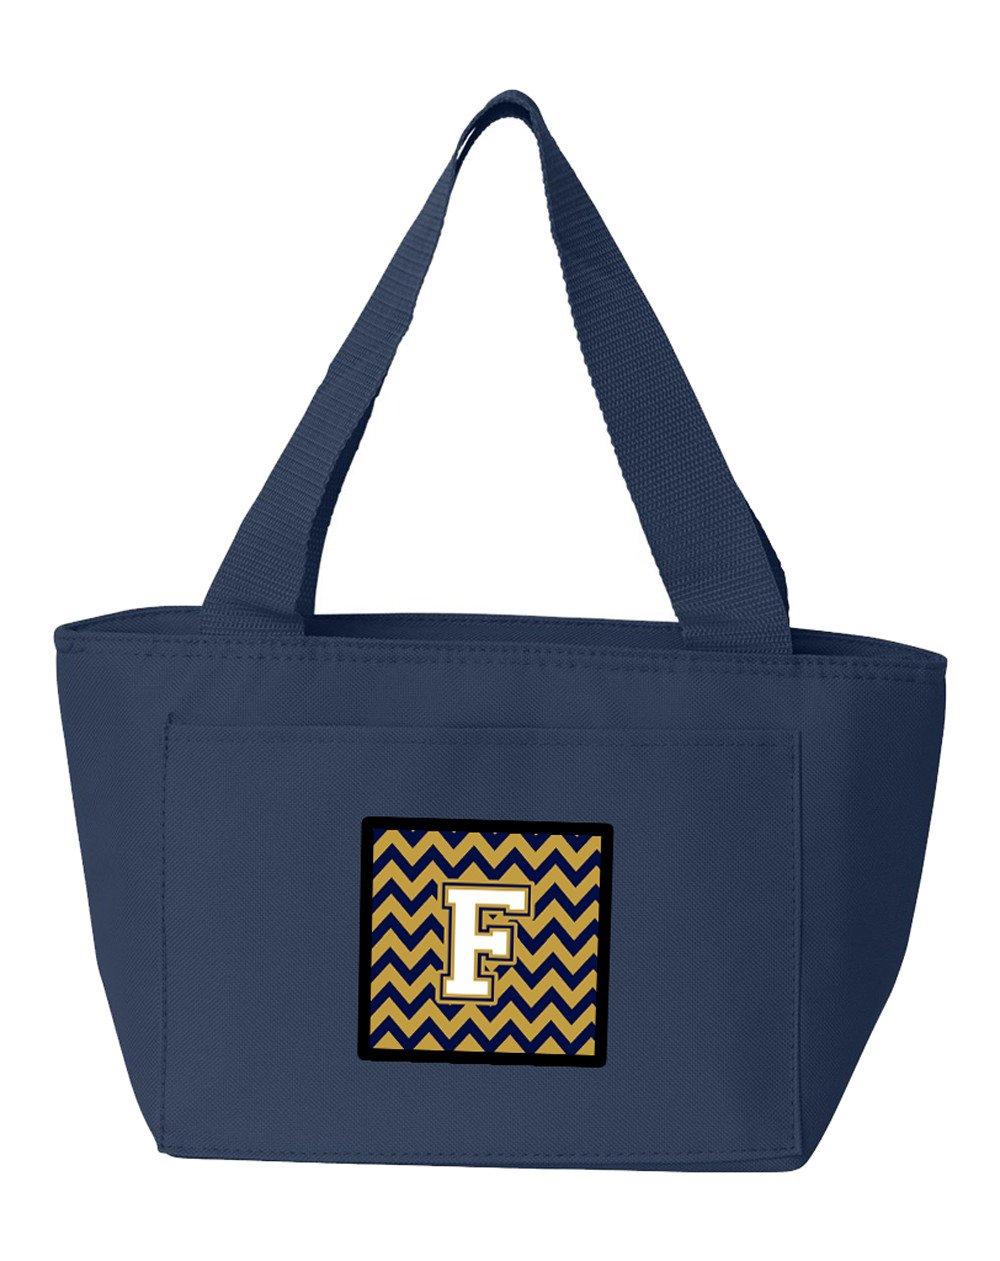 Letter F Chevron Navy Blue and Gold Lunch Bag CJ1057-FNA-8808 by Caroline's Treasures